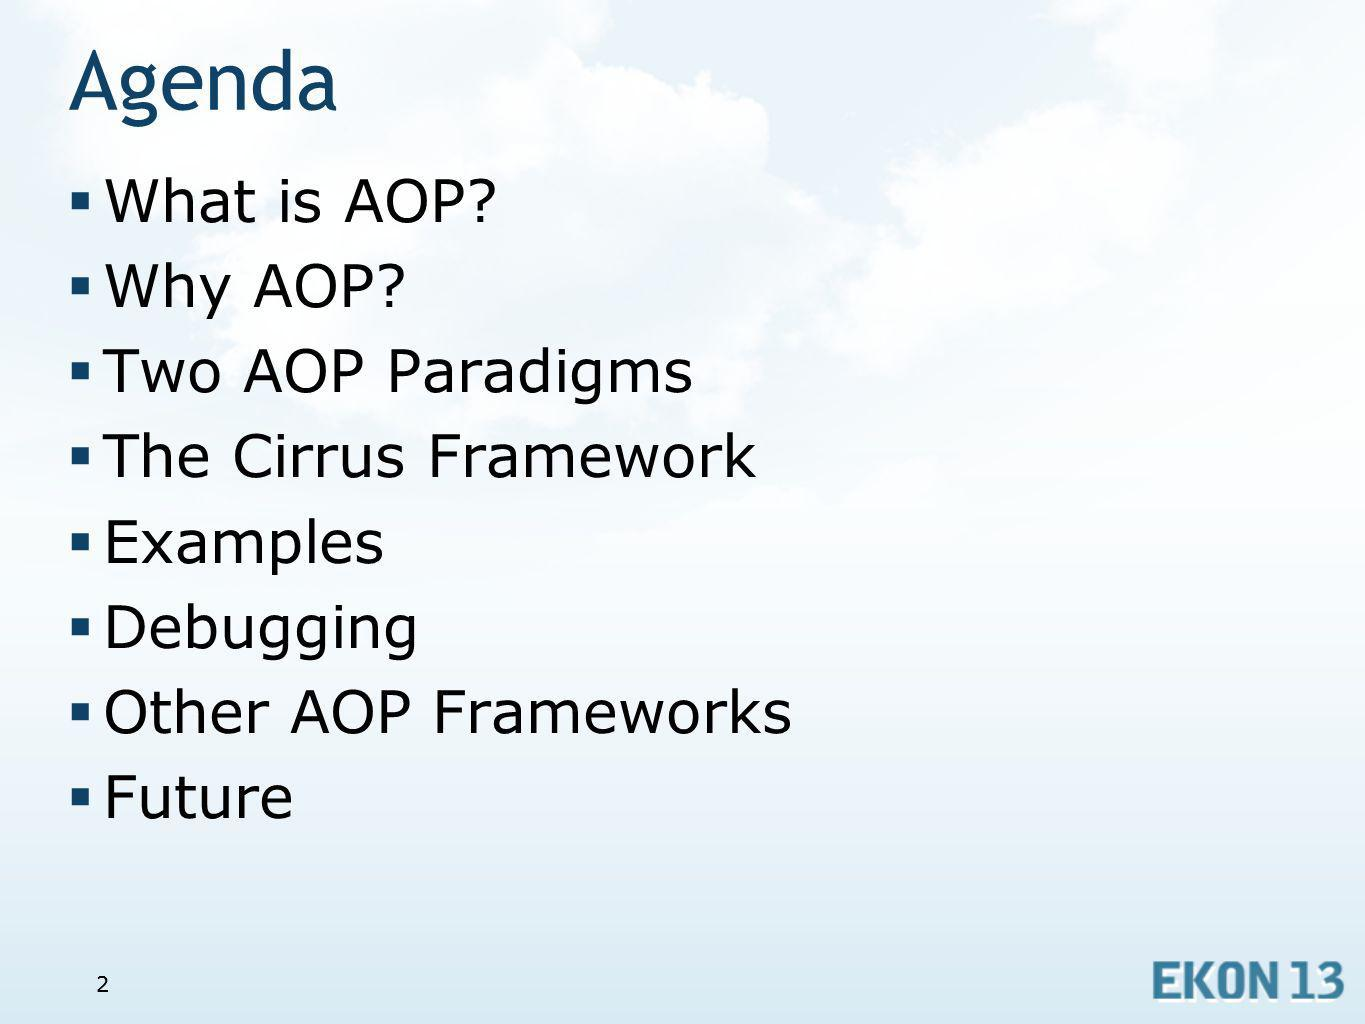 Agenda What is AOP Why AOP Two AOP Paradigms The Cirrus Framework